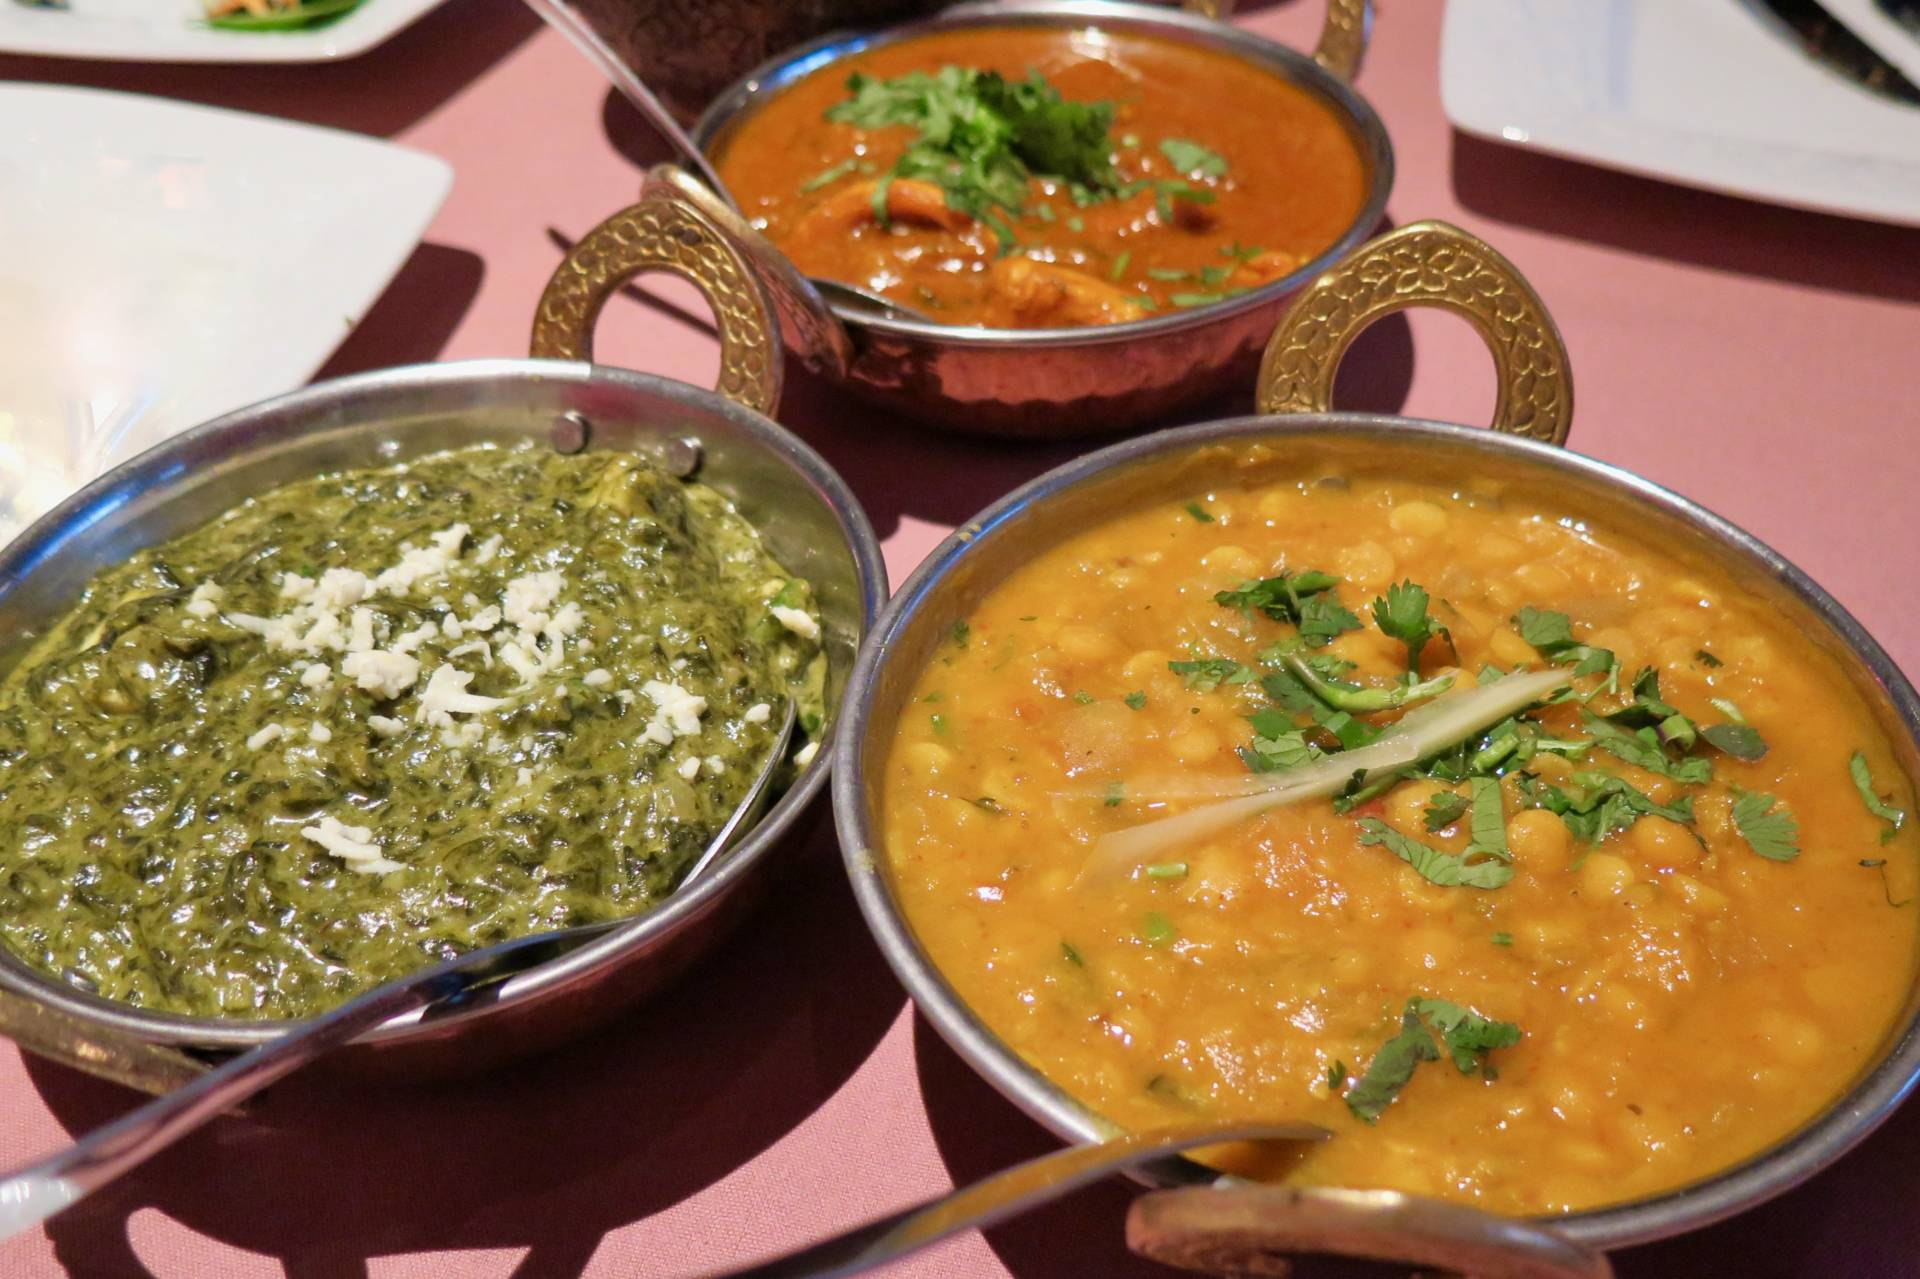 The creamy organic paneer makes this saag stand out.